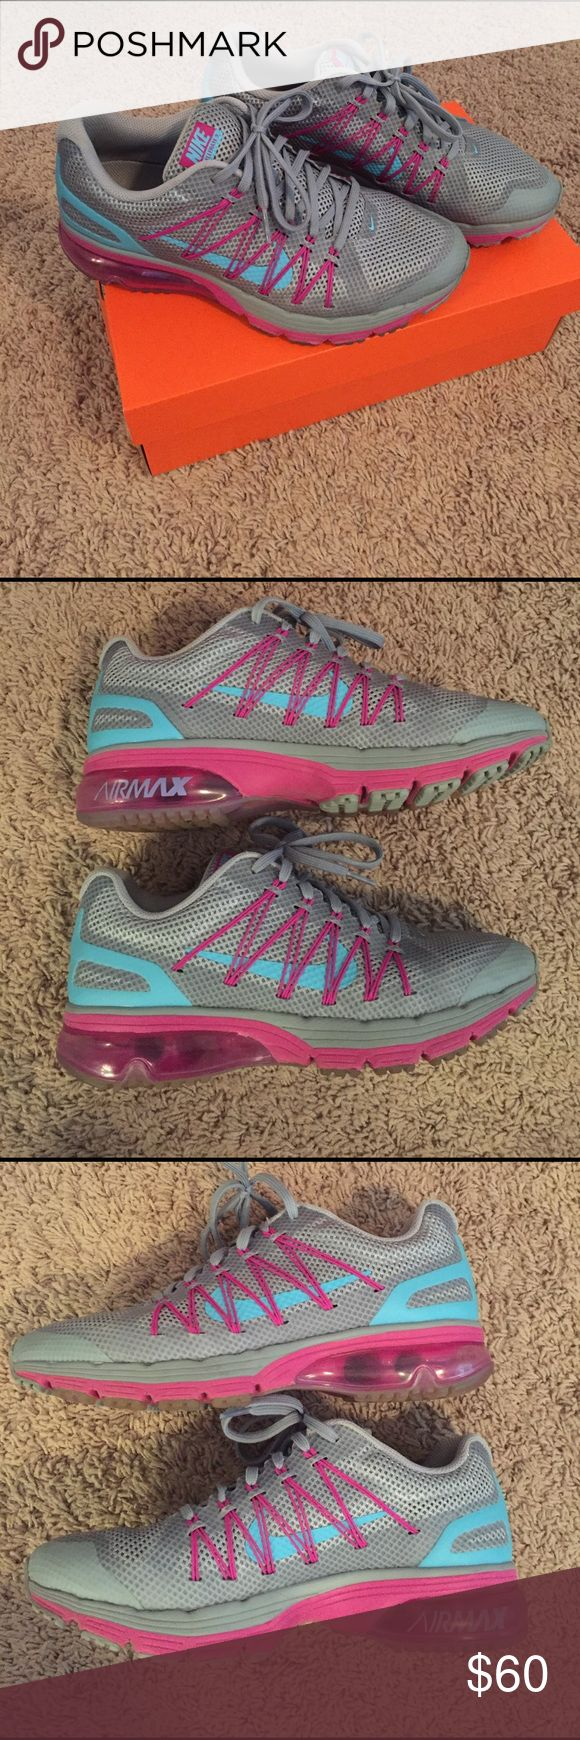 Women's Nike Air Max Excellerate 3 Gray, turquoise, and magenta. Sz 8 1/2. Worn a few times. Comes with Nike box (not original box). Nike Shoes Athletic Shoes